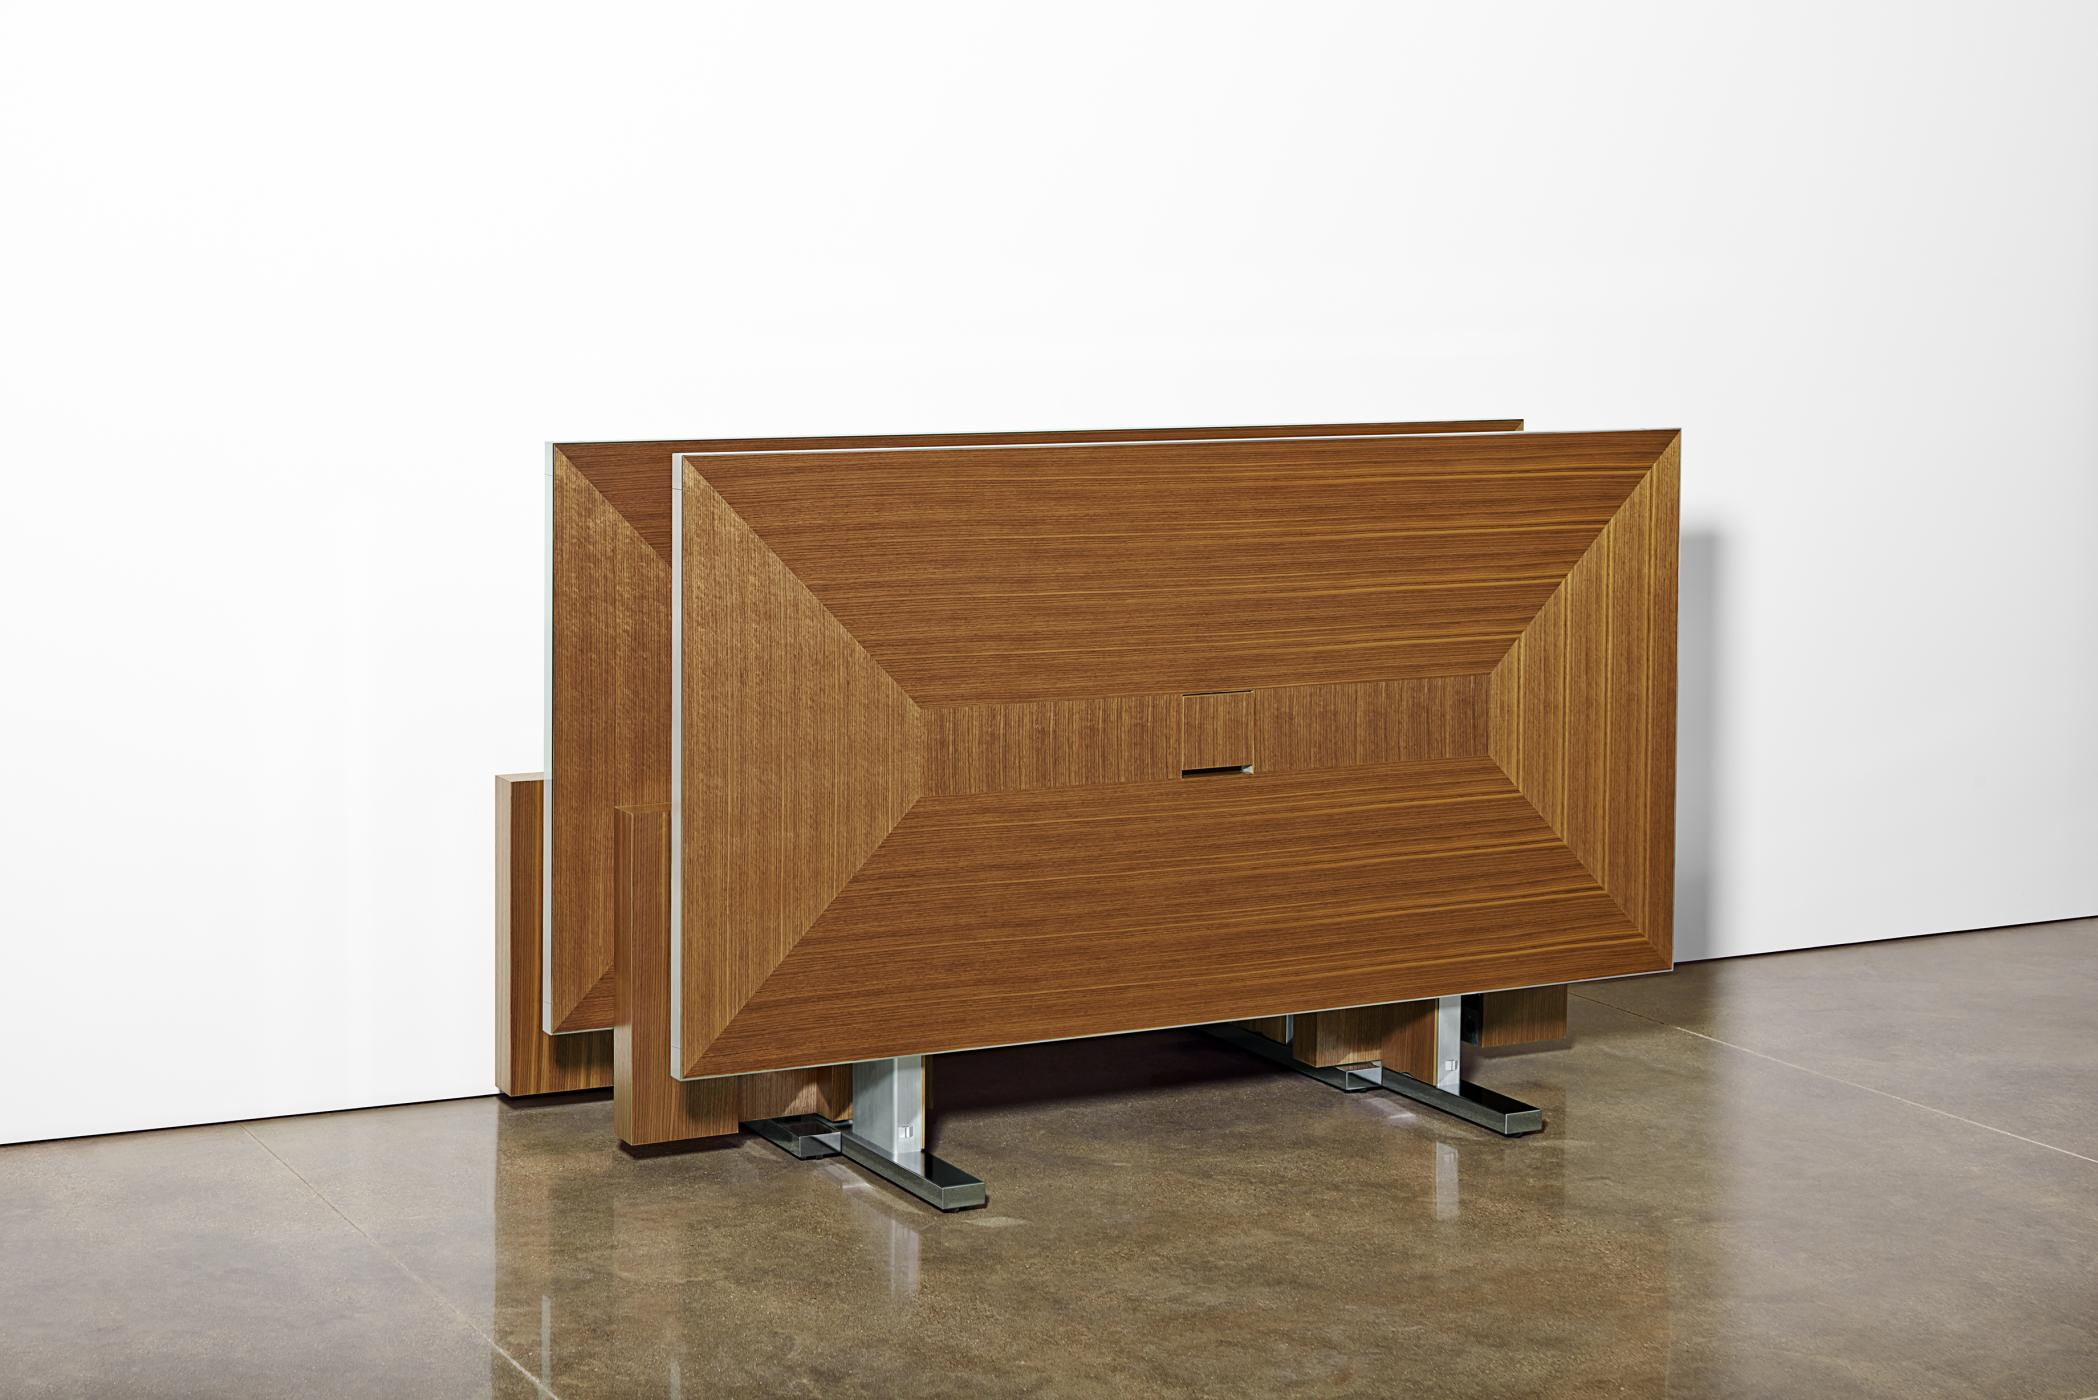 Nested Motus mobile tables with veneer pattern surface